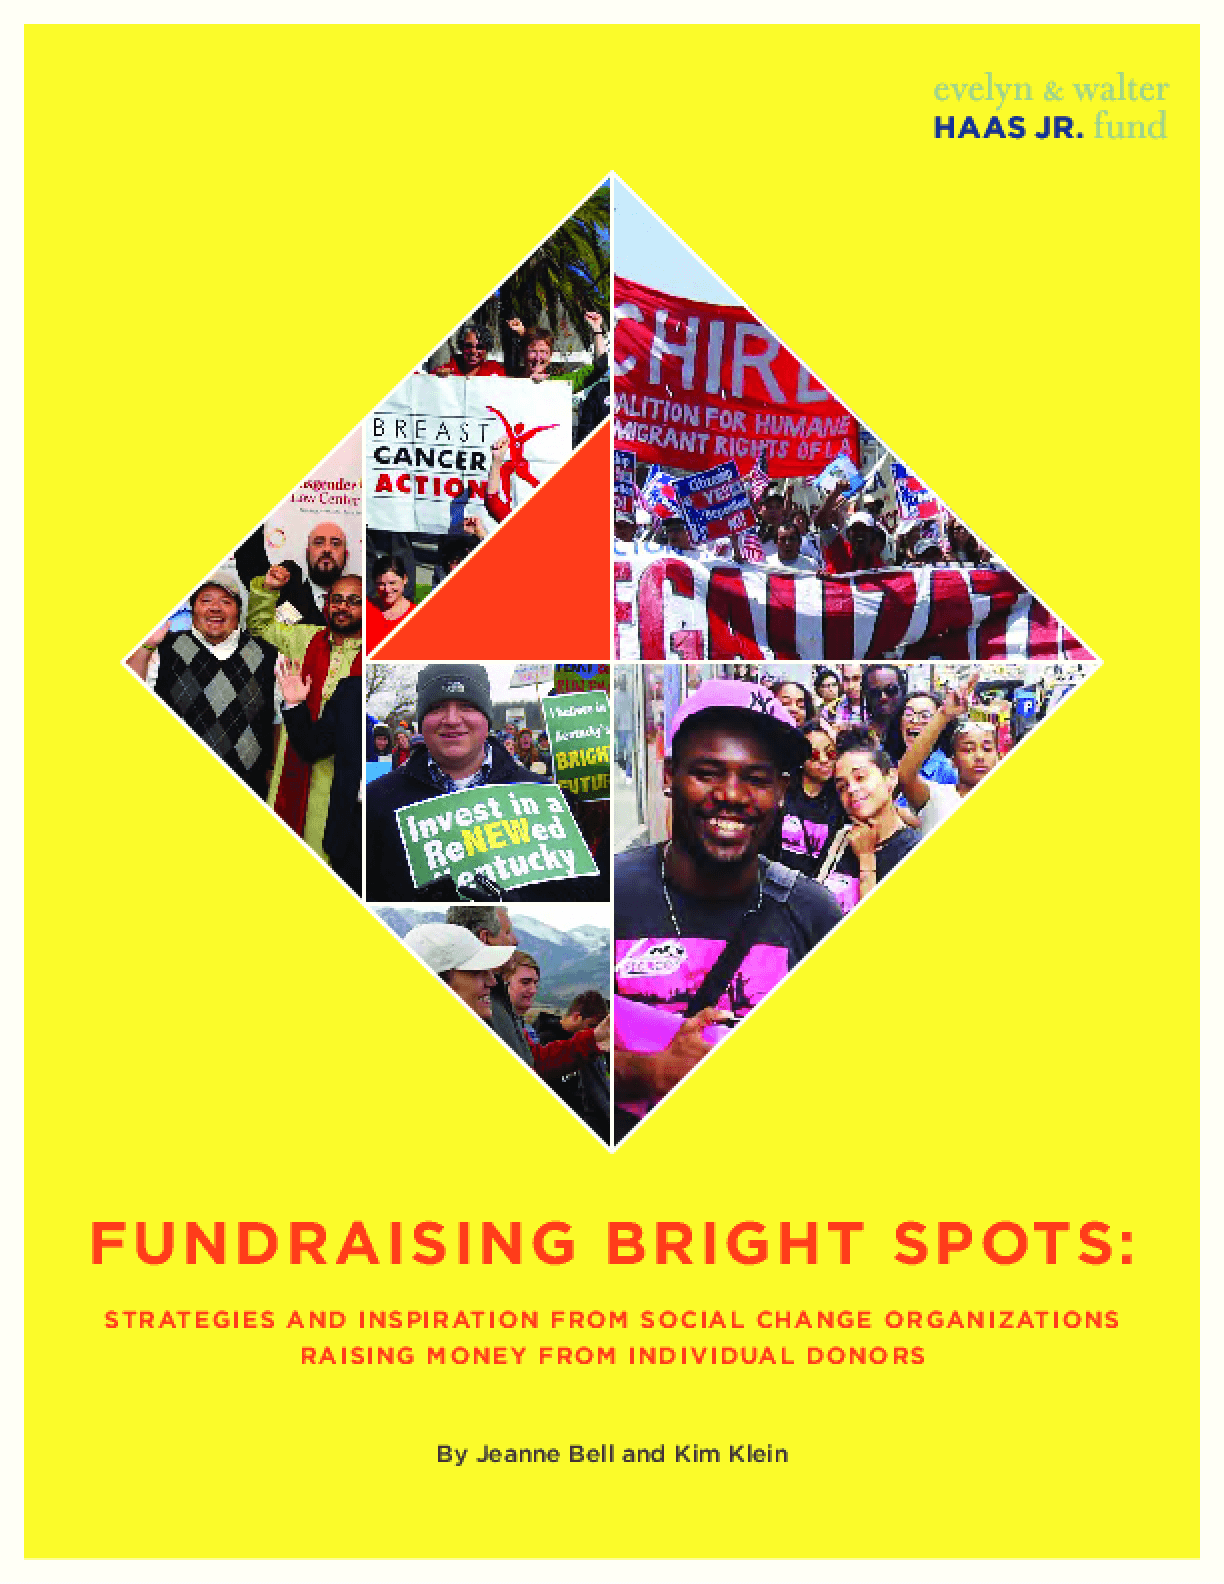 Fundraising Bright Spots: Strategies and Inspiration from Social Change Organizations Raising Money from Individual Donors